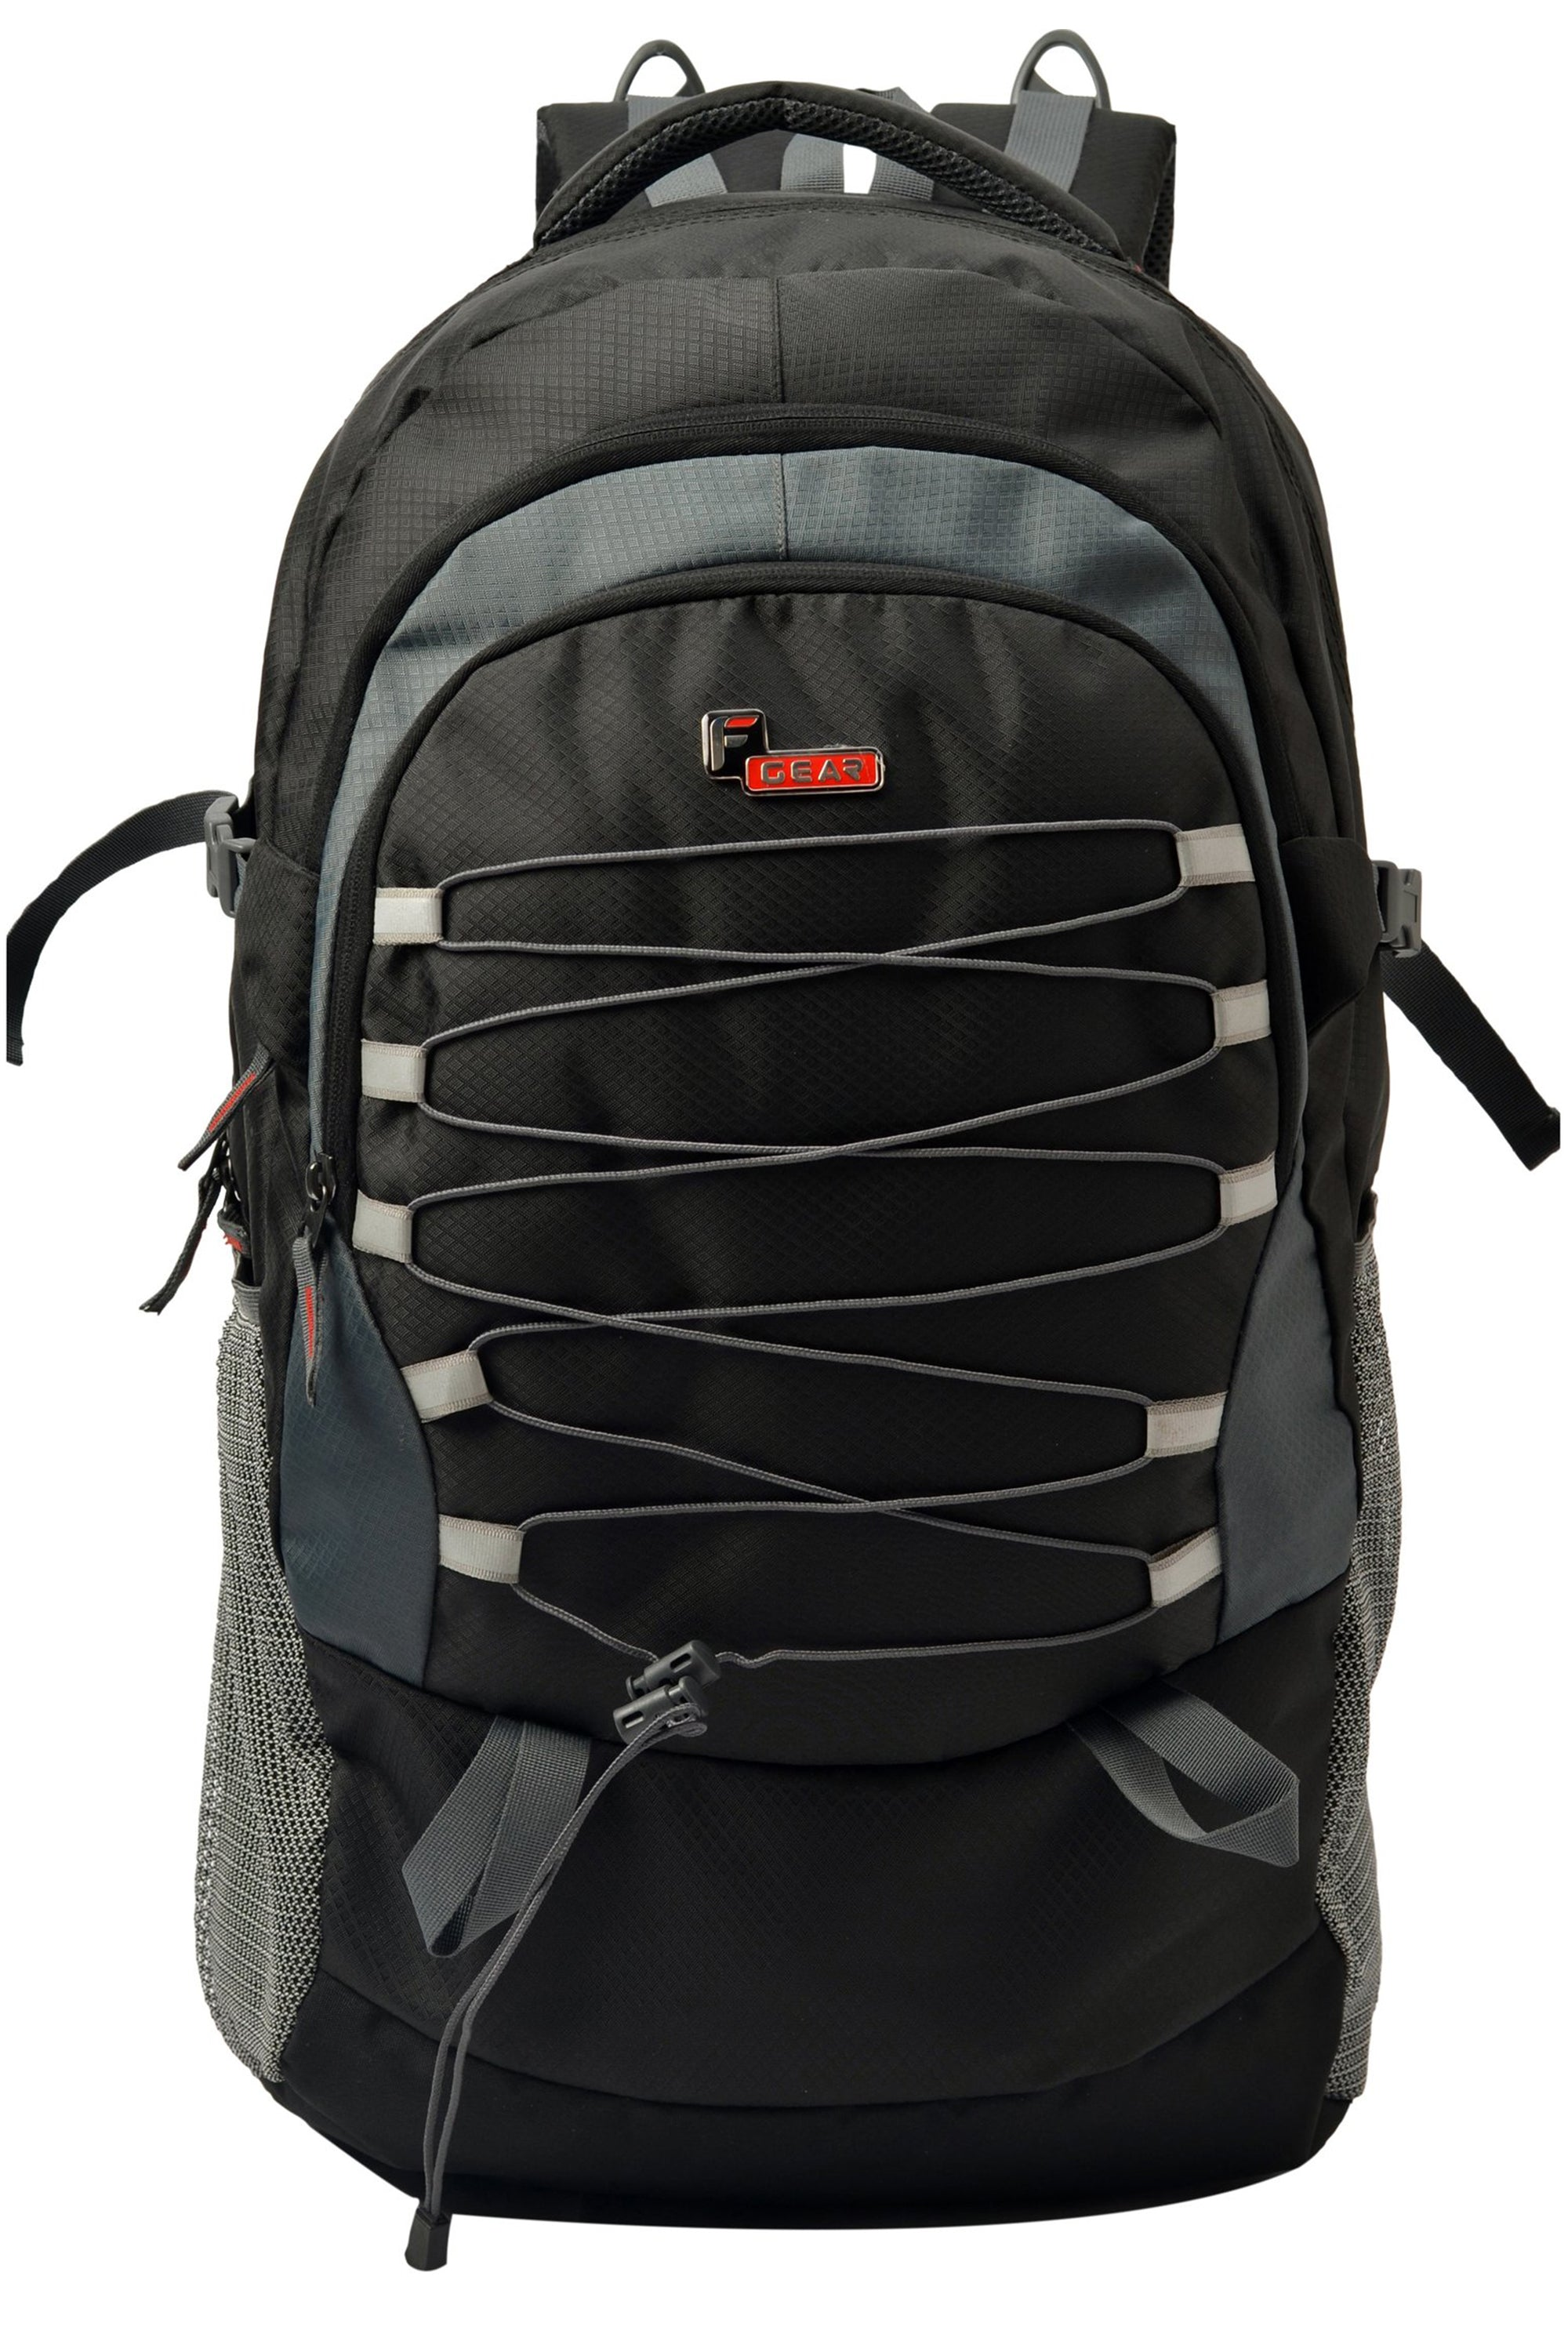 F Gear Elixer 45 liters Rucksack (Black, Grey Diamond)